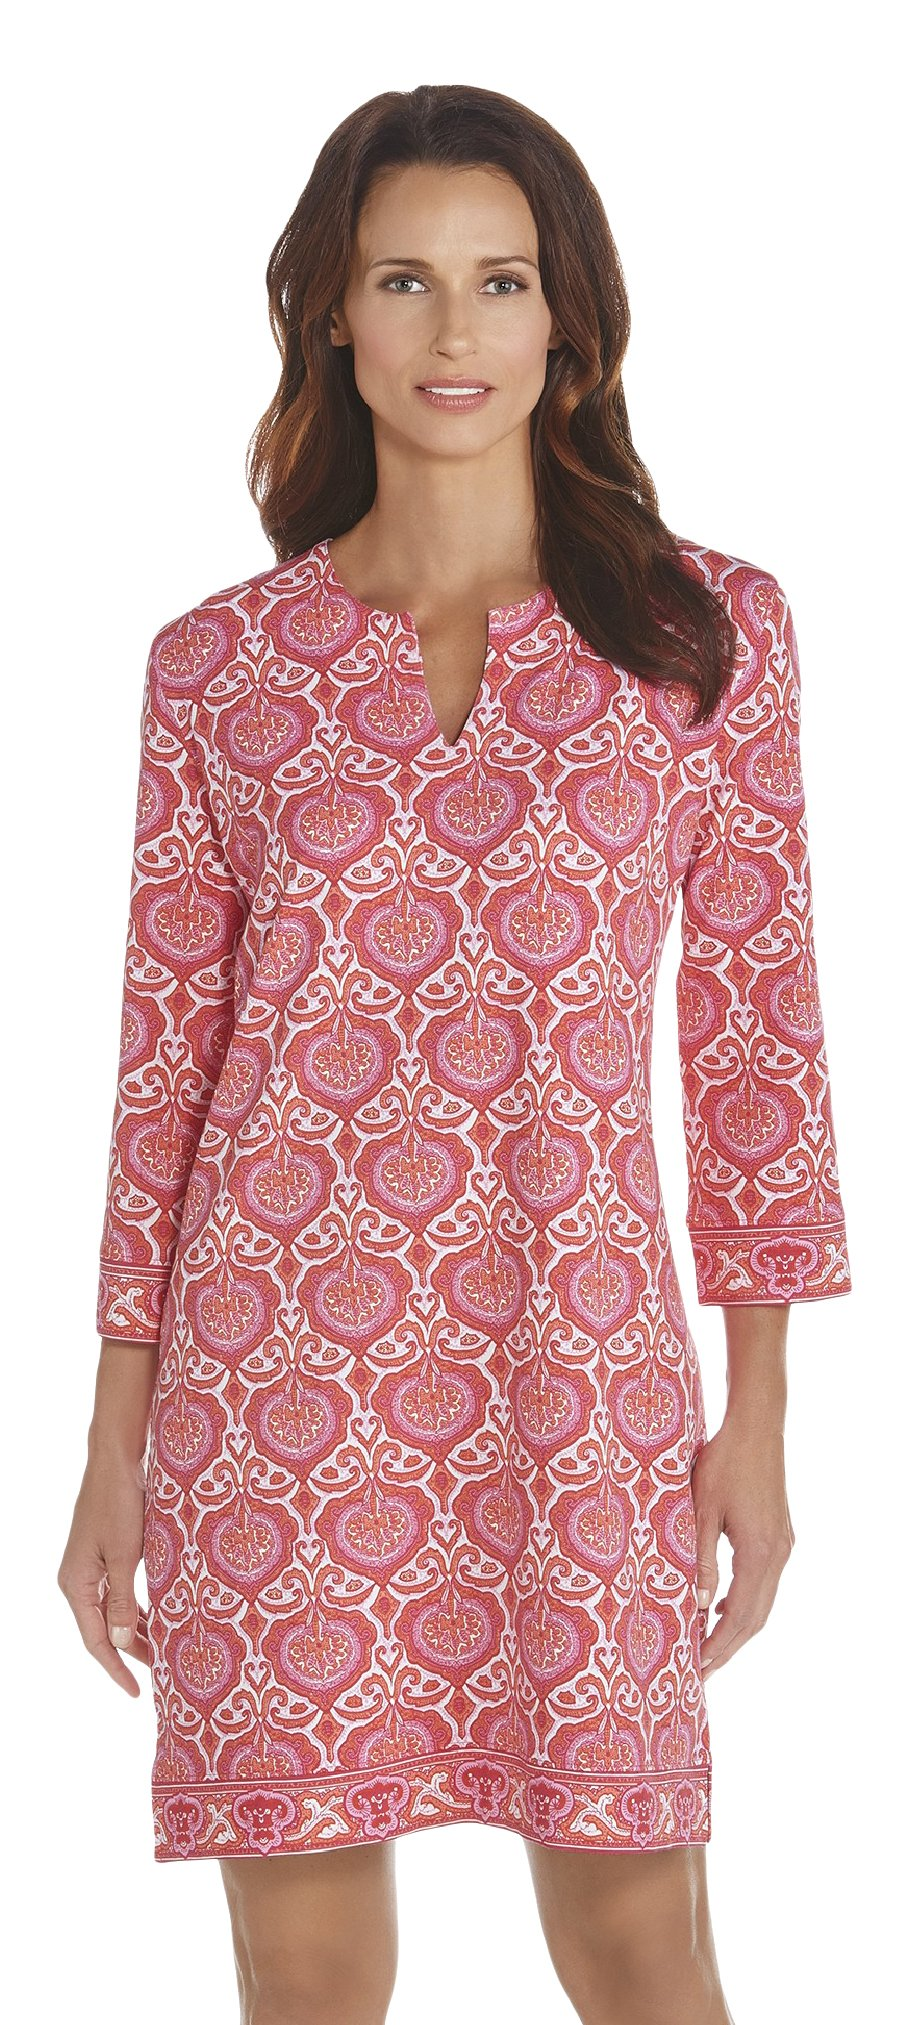 680a88db70e Coolibar UPF 50+ Women s Oceanside Tunic Dress - Sun Protective (Large-  Pink Moroccan Mosaic) Sports Apparel